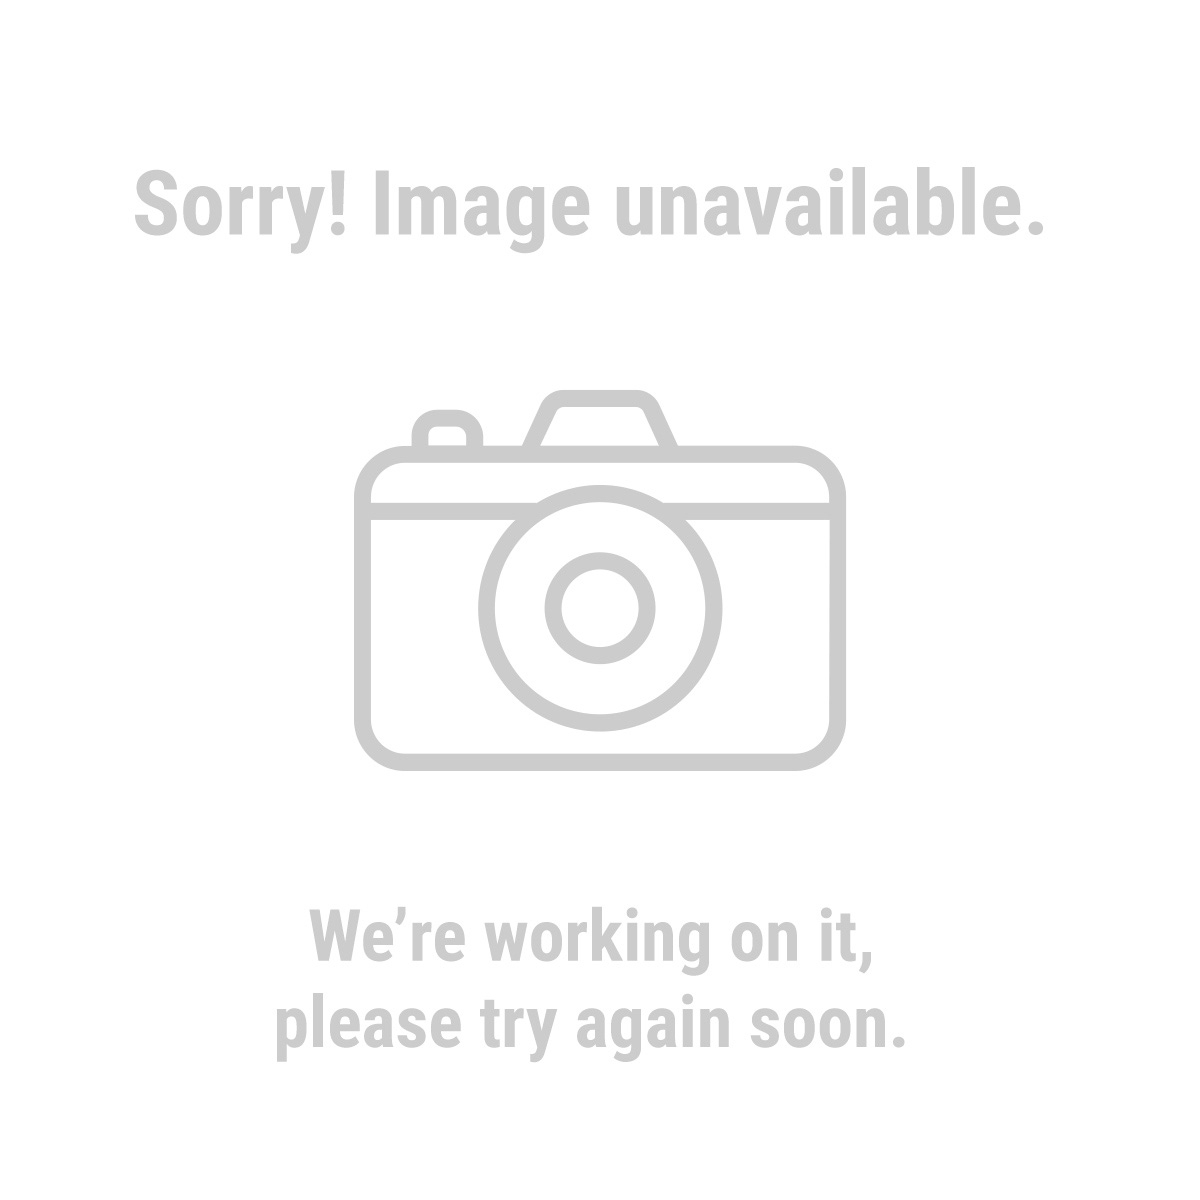 Pittsburgh 90802 Folding Locking Back Utility Knife